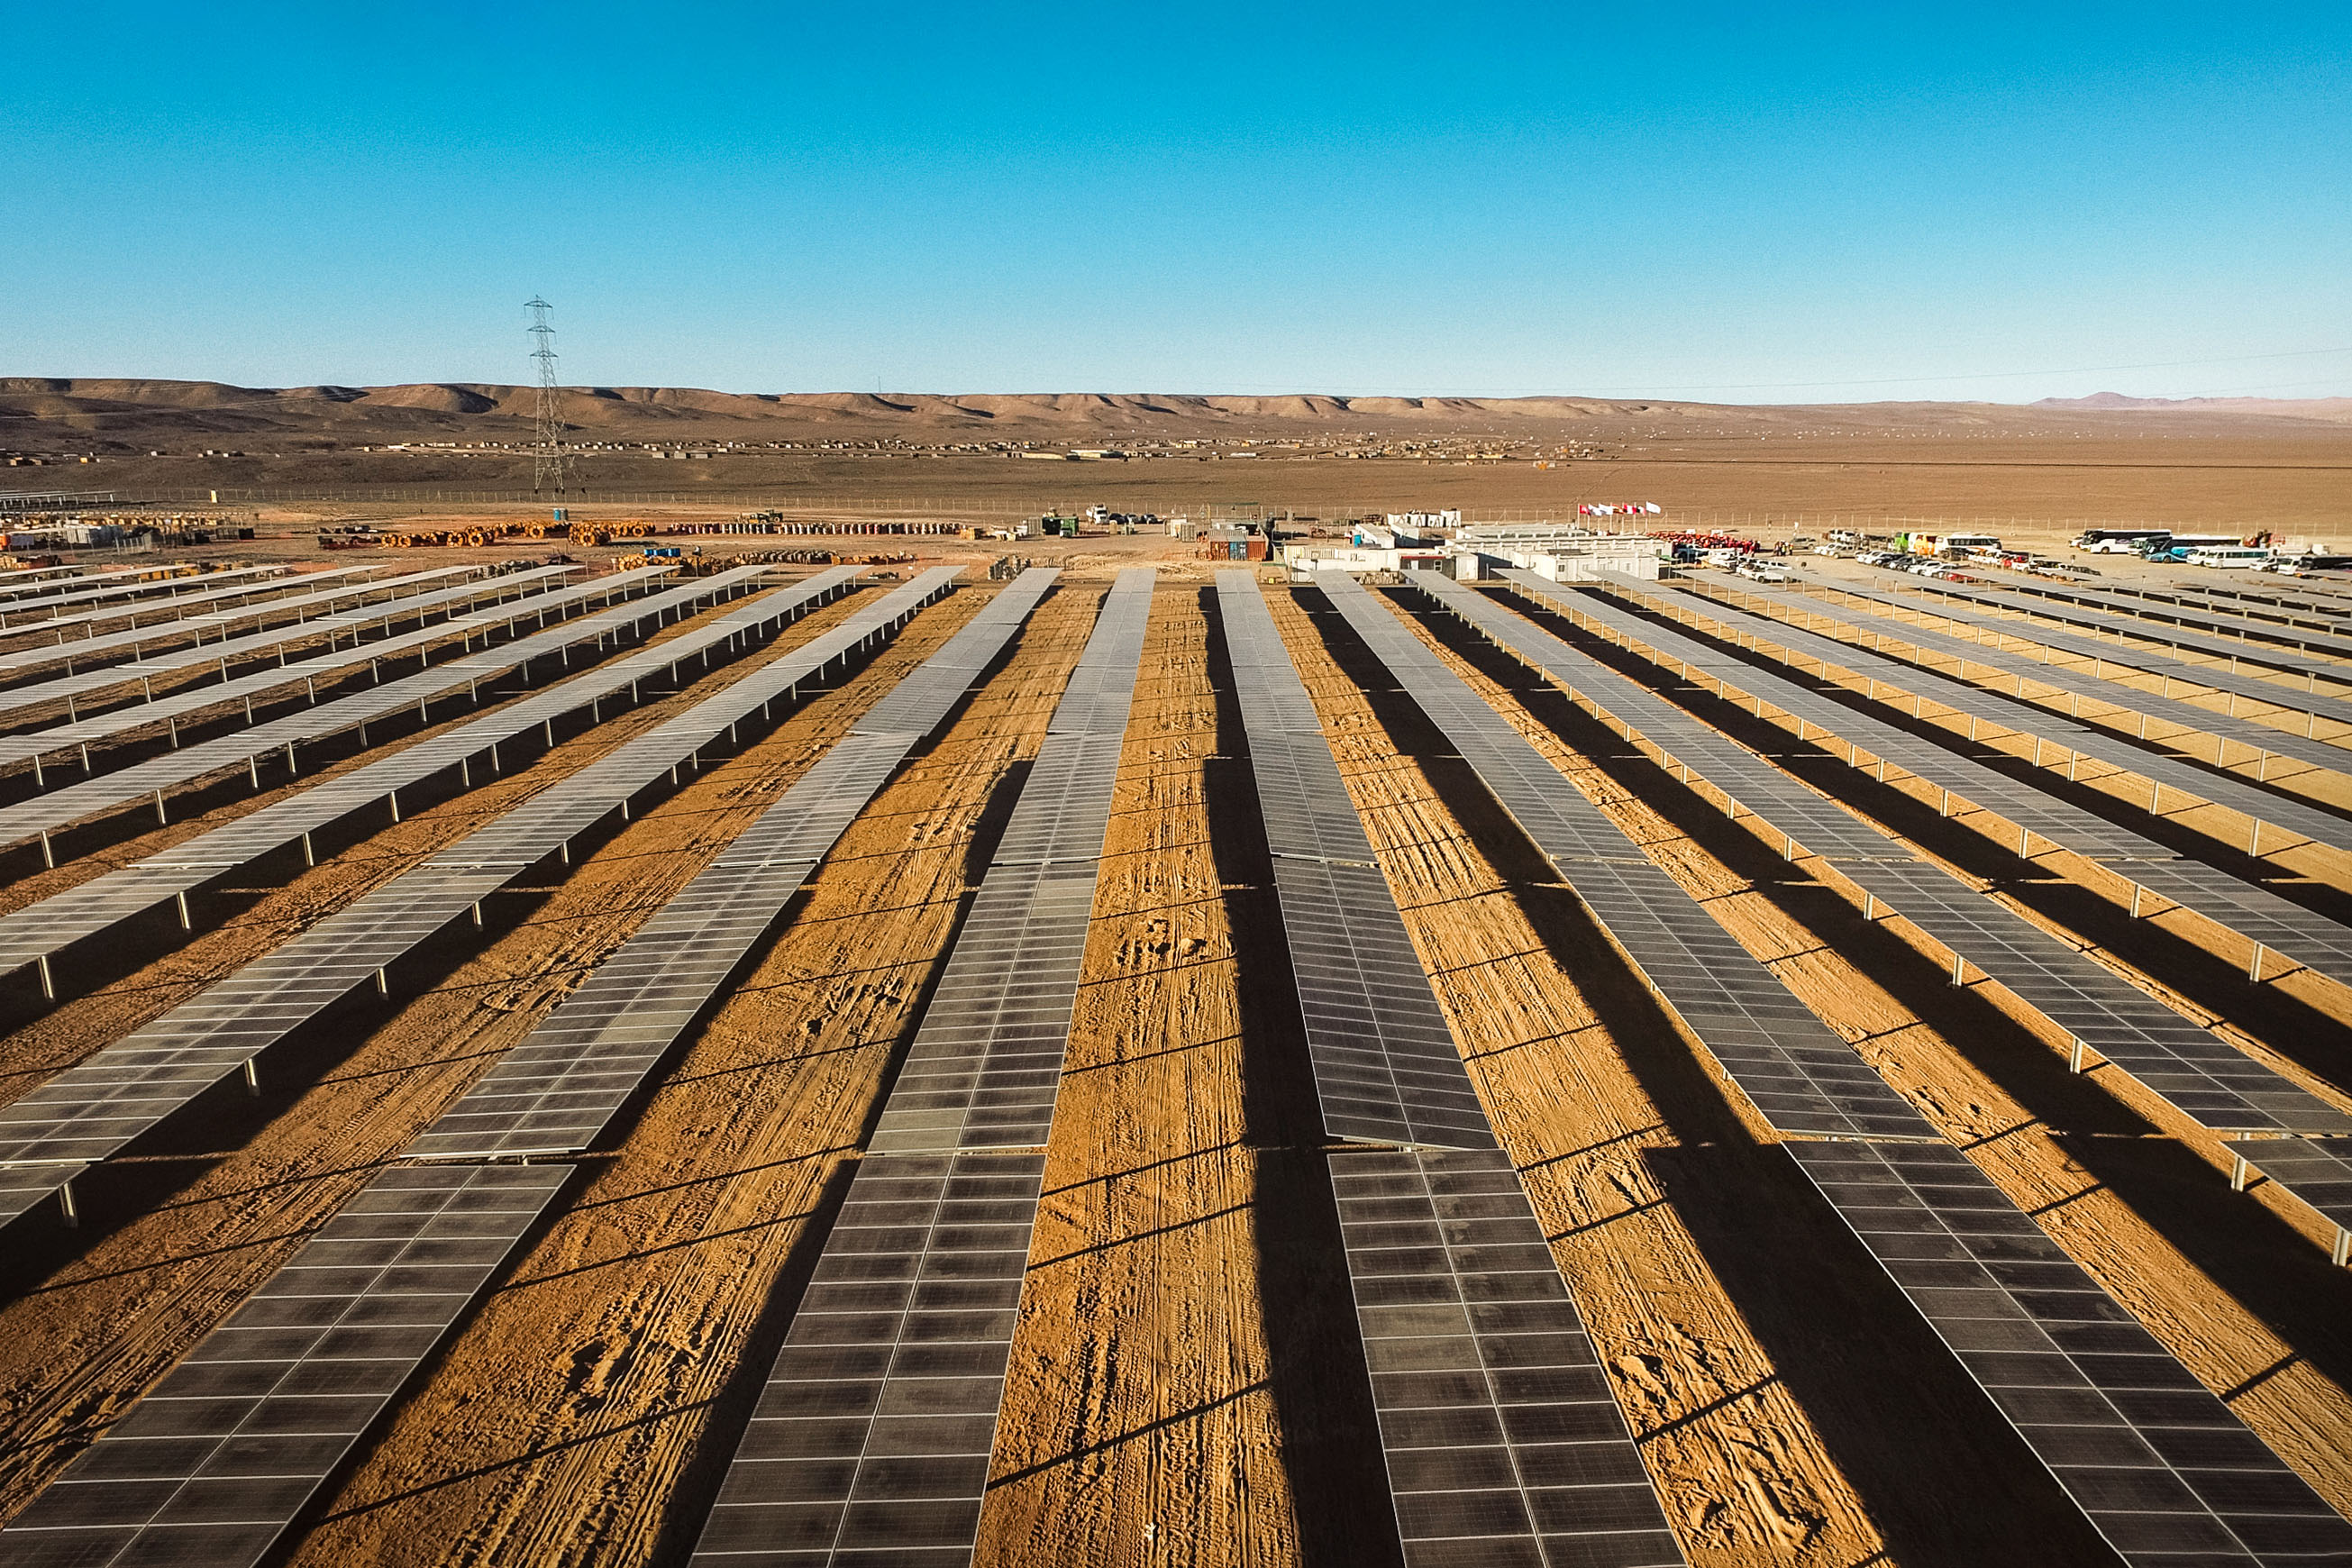 Largest solar power plant in the country kickstarts Peru's renewable energy plans